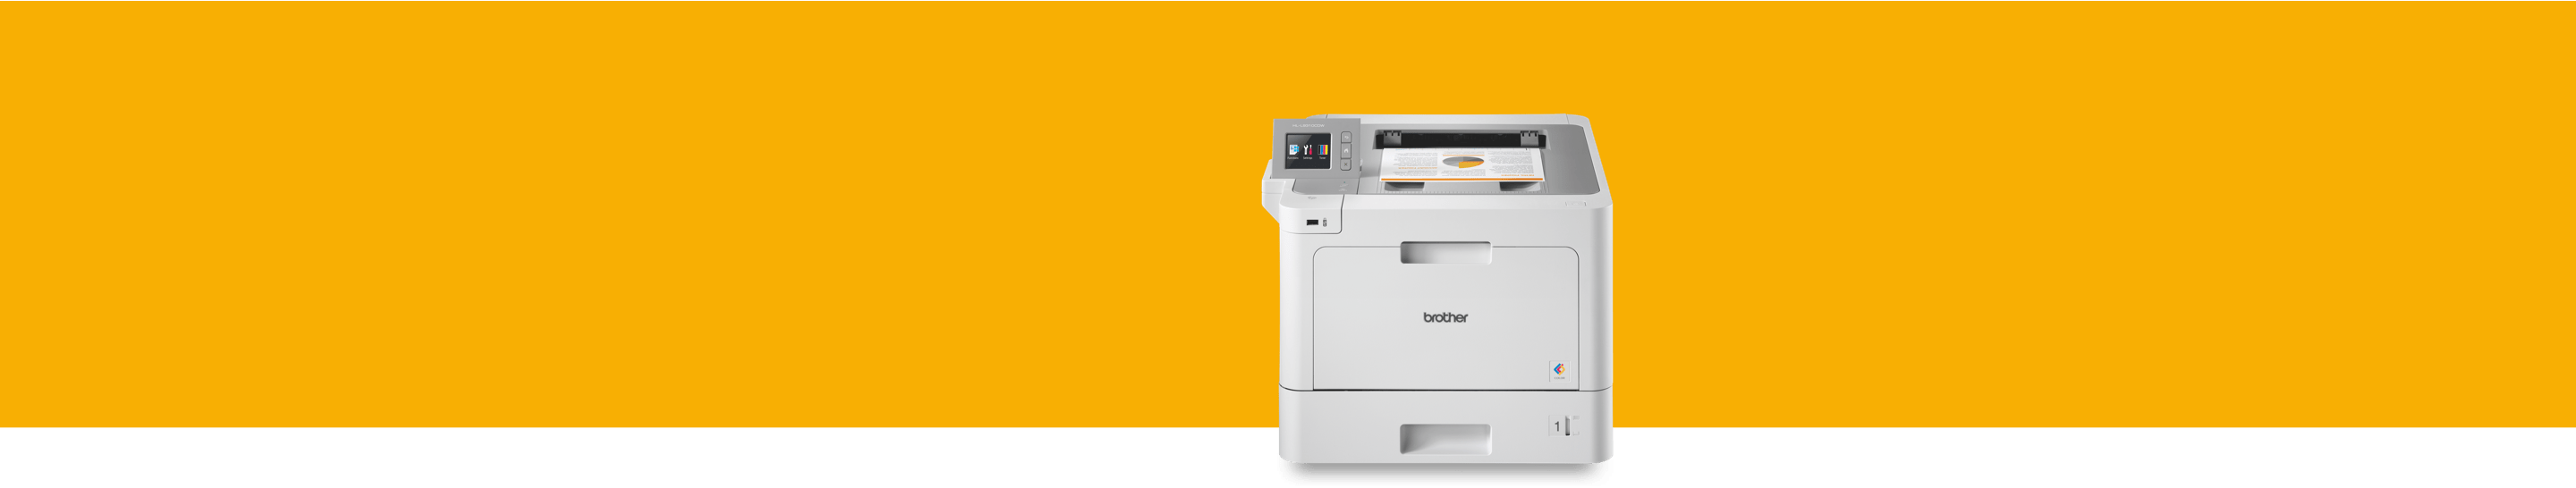 colour laser printer on an orange background